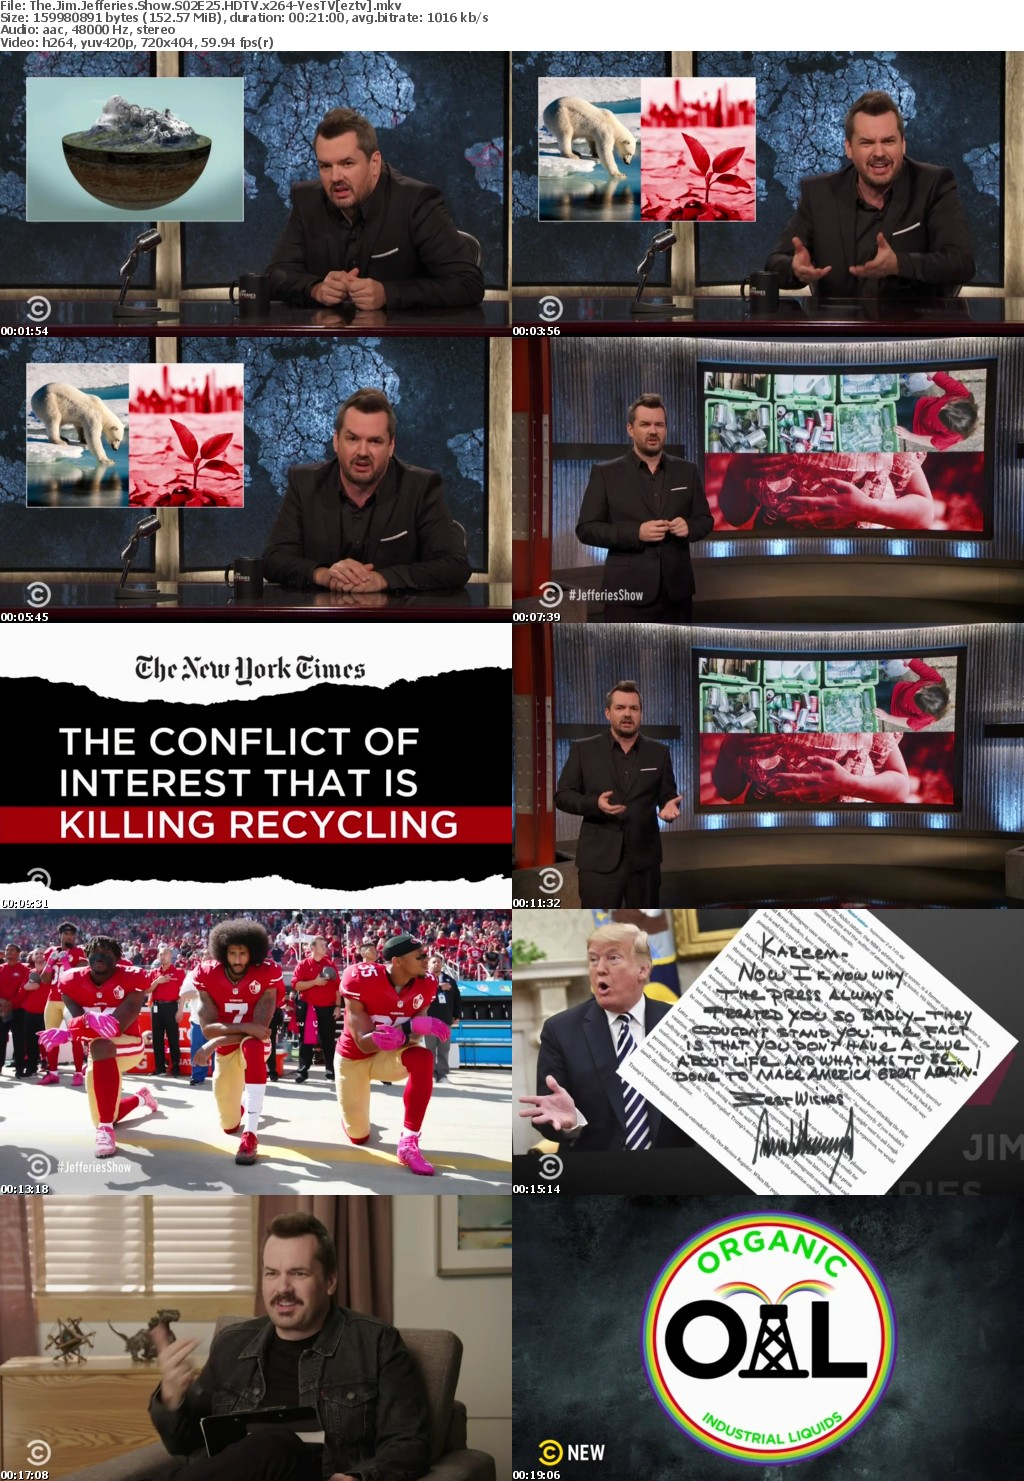 The Jim Jefferies Show S02E25 HDTV x264-YesTV